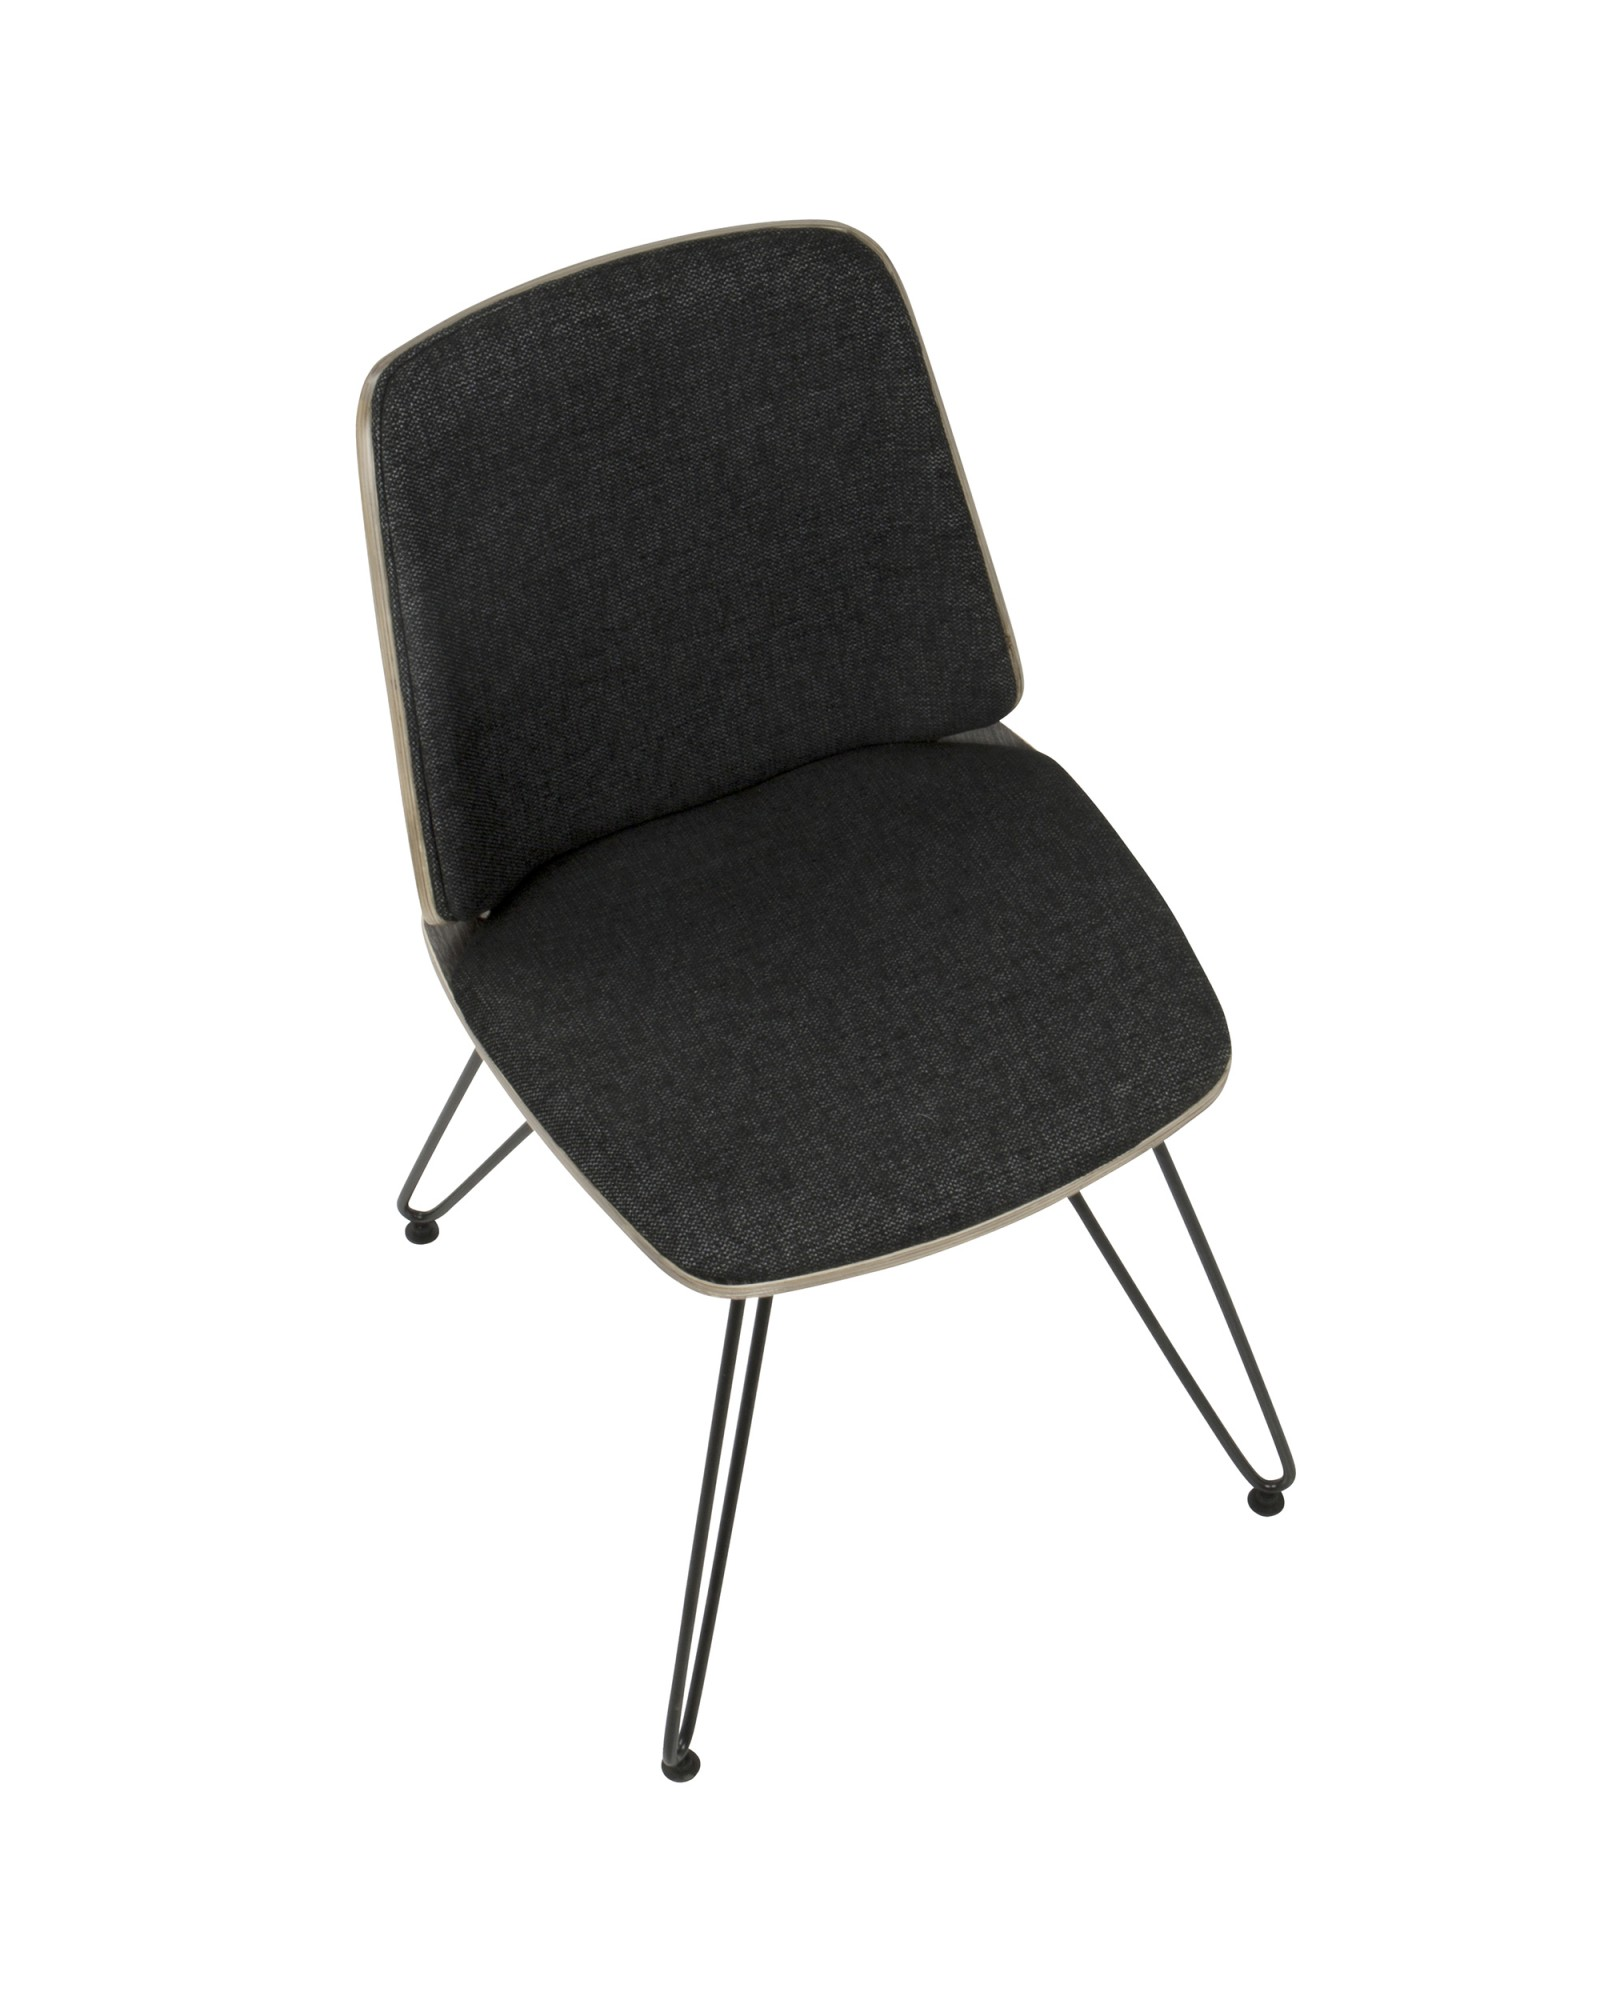 Avery Mid-Century Modern Dining/Accent Chair in Dark Grey Wood and Black Fabric - Set of 2